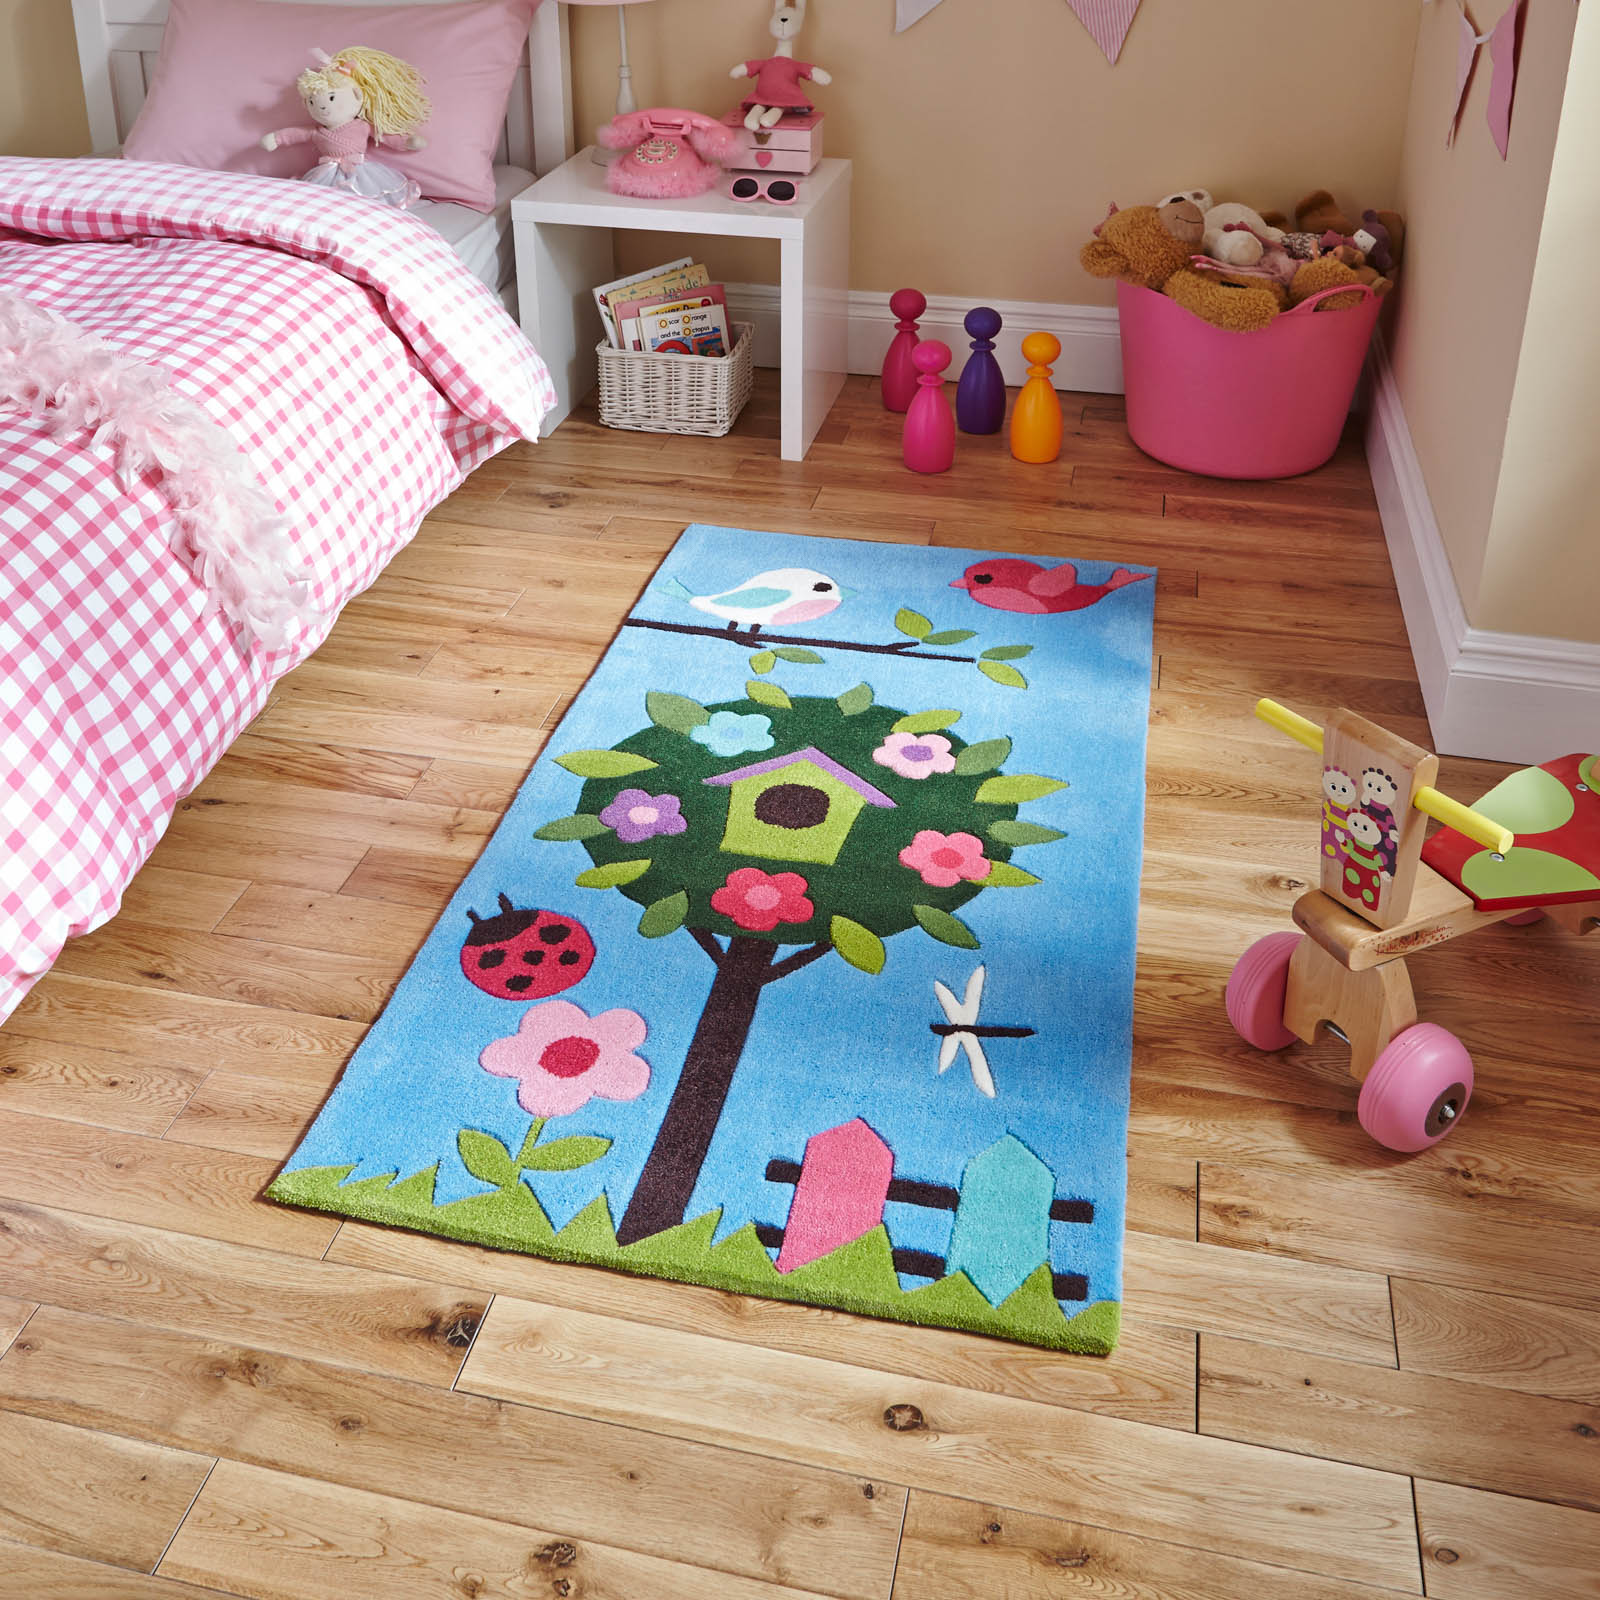 Hong Kong HK4897 Blue Kids Rug